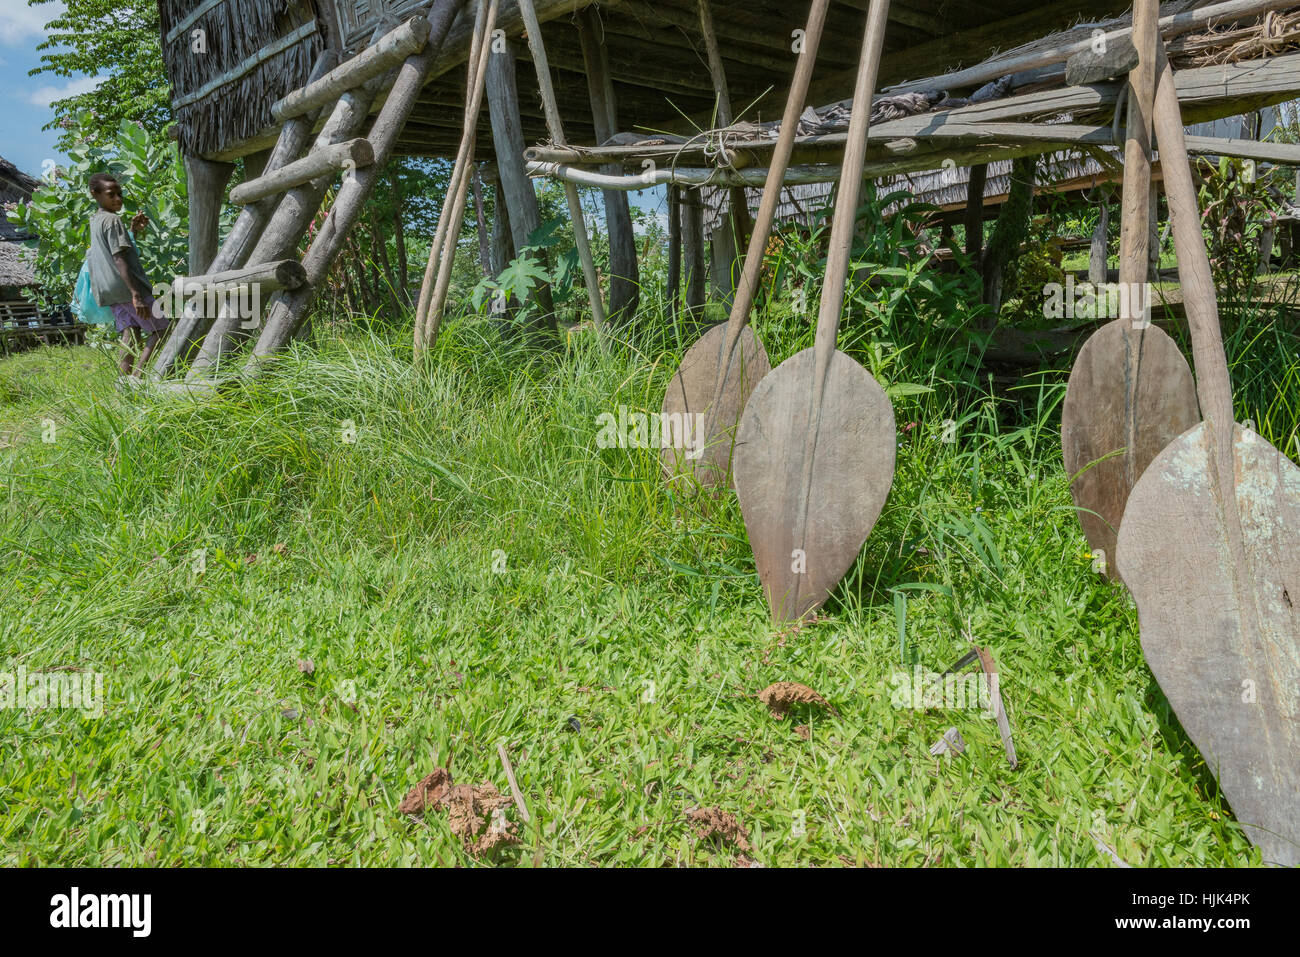 Young boy carrying a bag passing by a stilted house, with paddles in front, in a village on the Sepik River in Papua - Stock Image